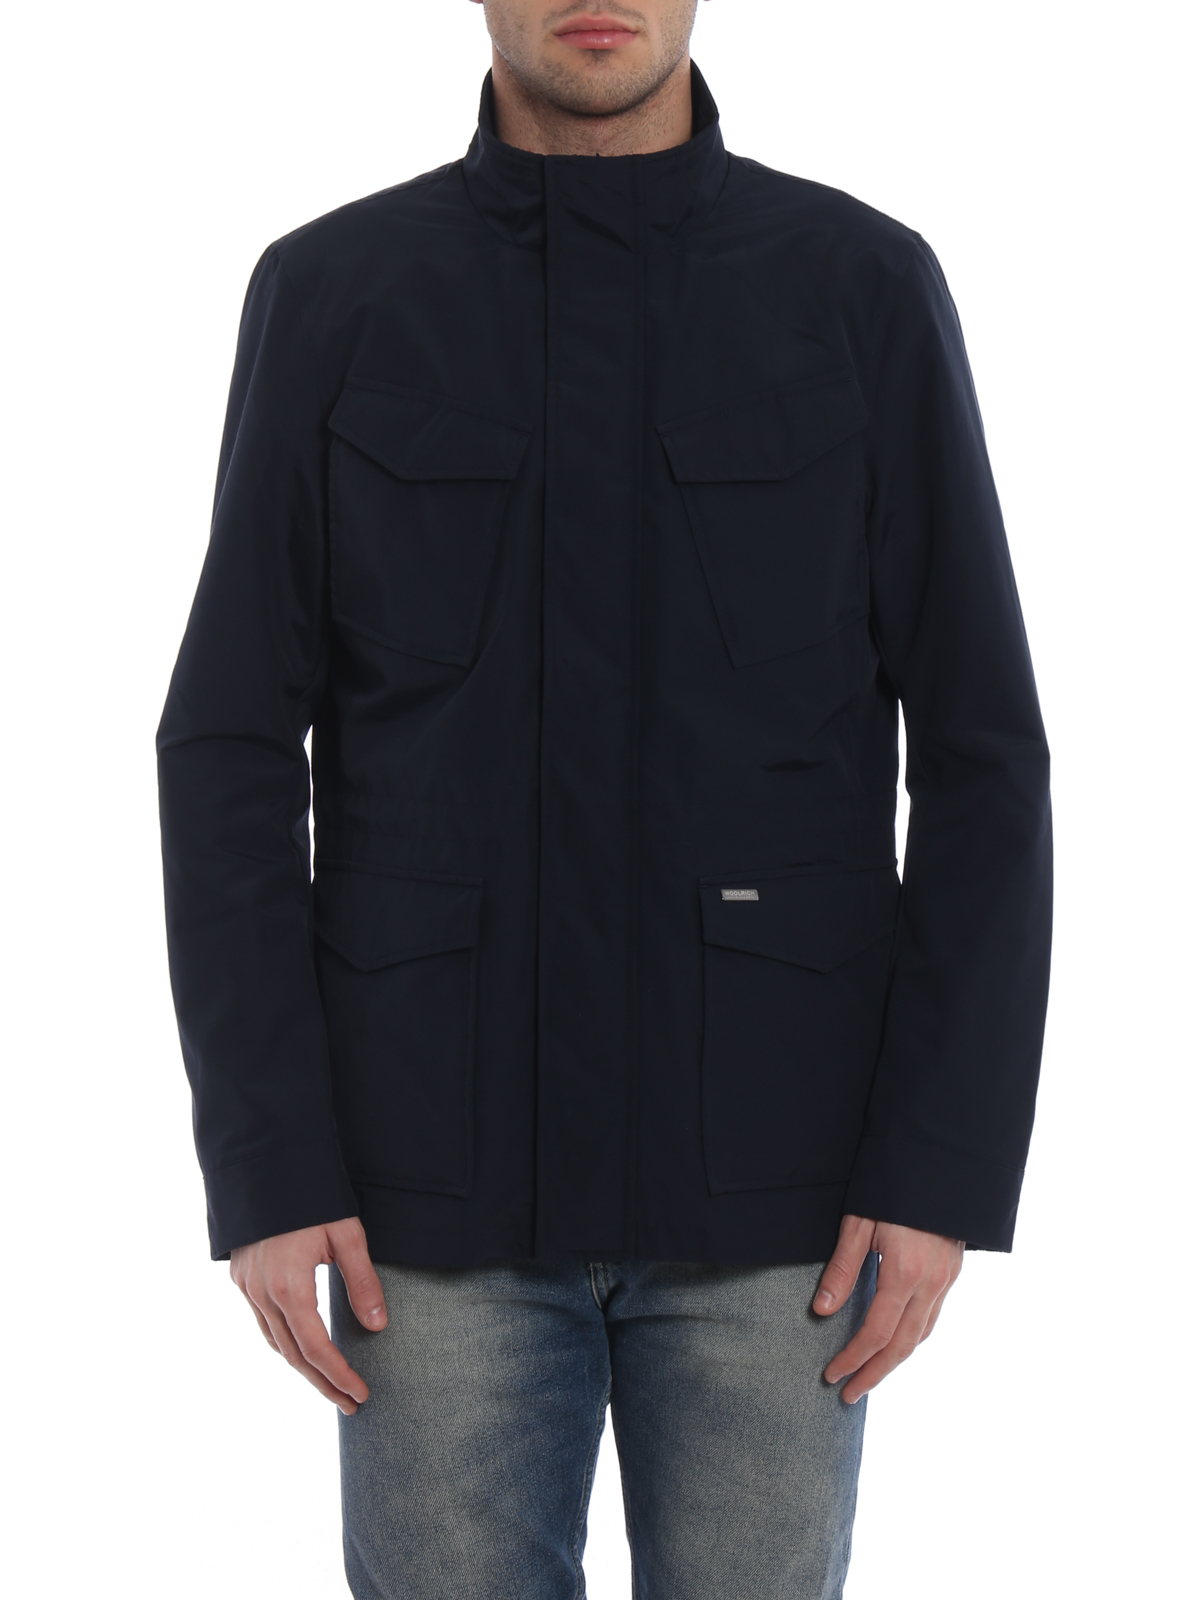 1b8cbbcfb6f Woolrich - Travel cool and dry blue jacket - casual jackets ...